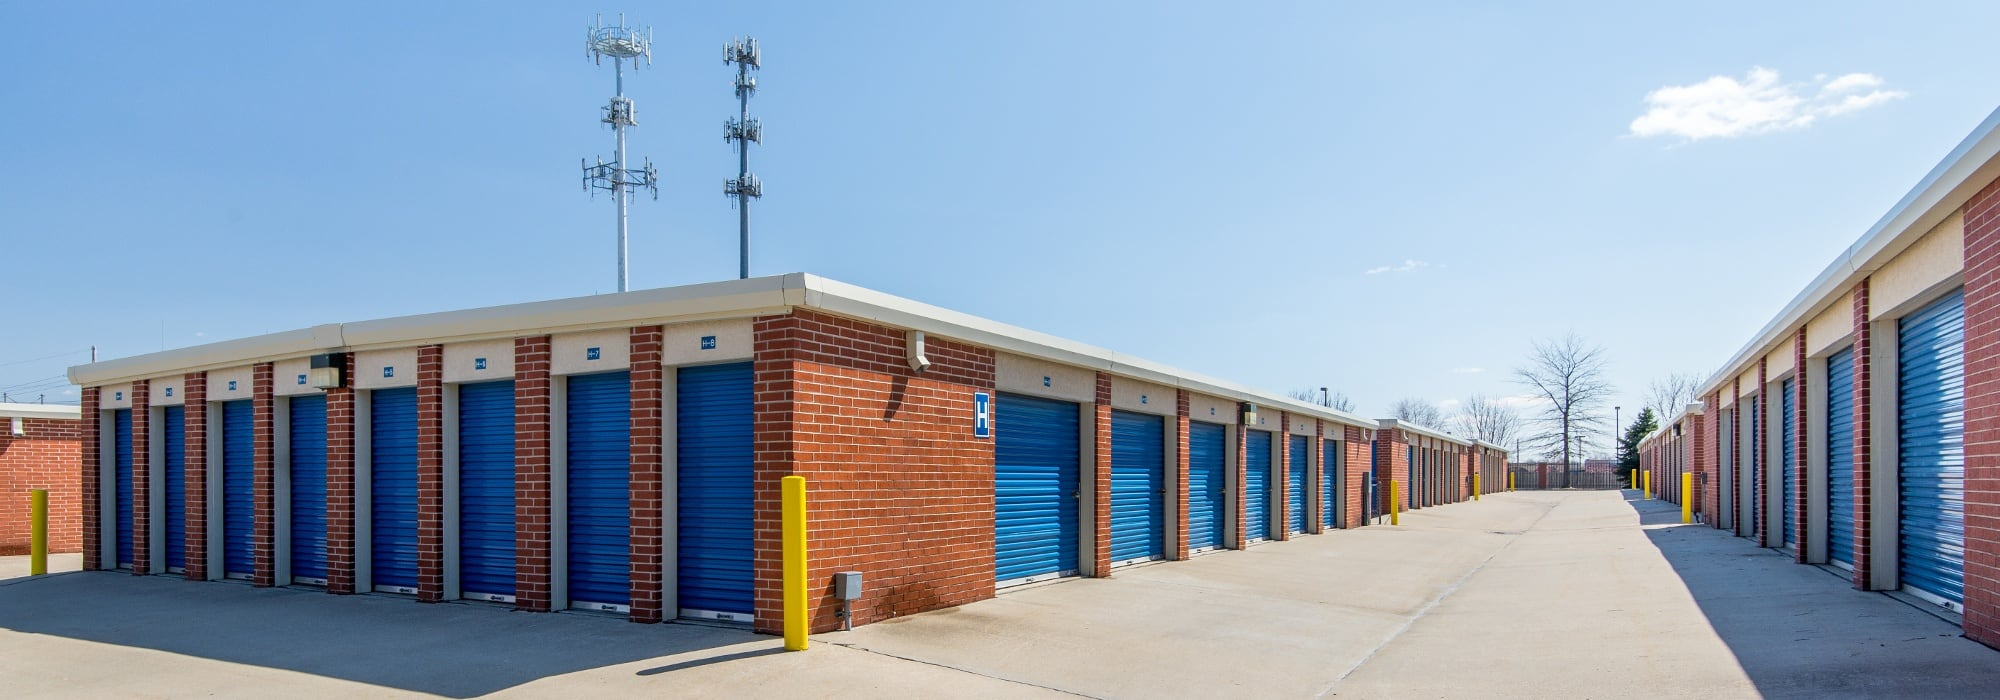 Self storage in Olathe KS